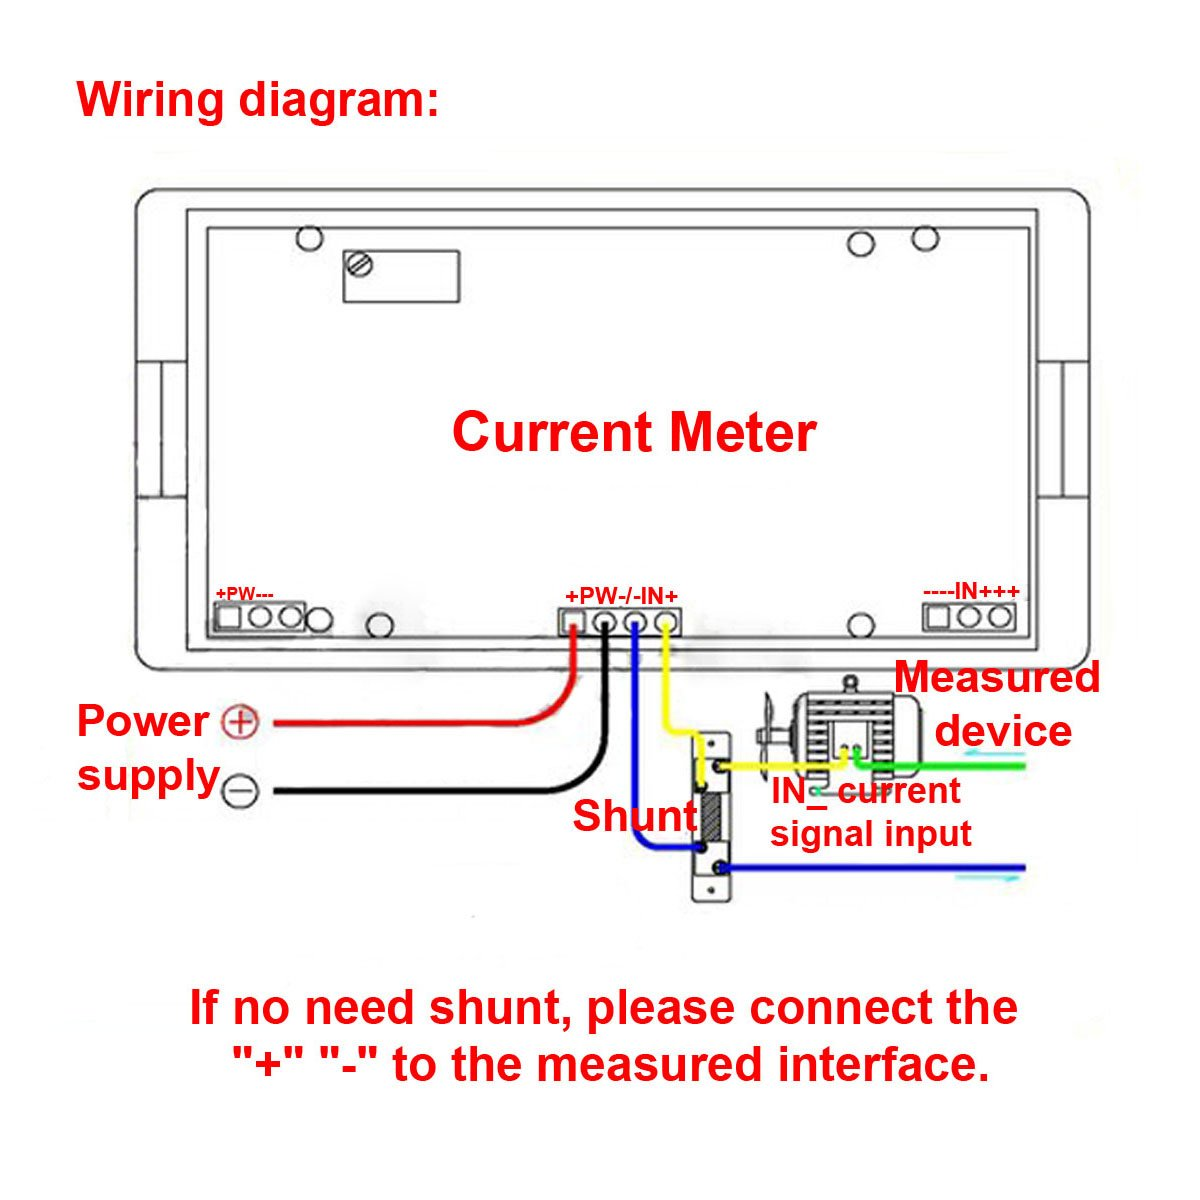 Ac Amp Meter Wiring Diagram 27 Images Dc Sl1200 Drok Power Supply U2022 Diagrams J Squared Co